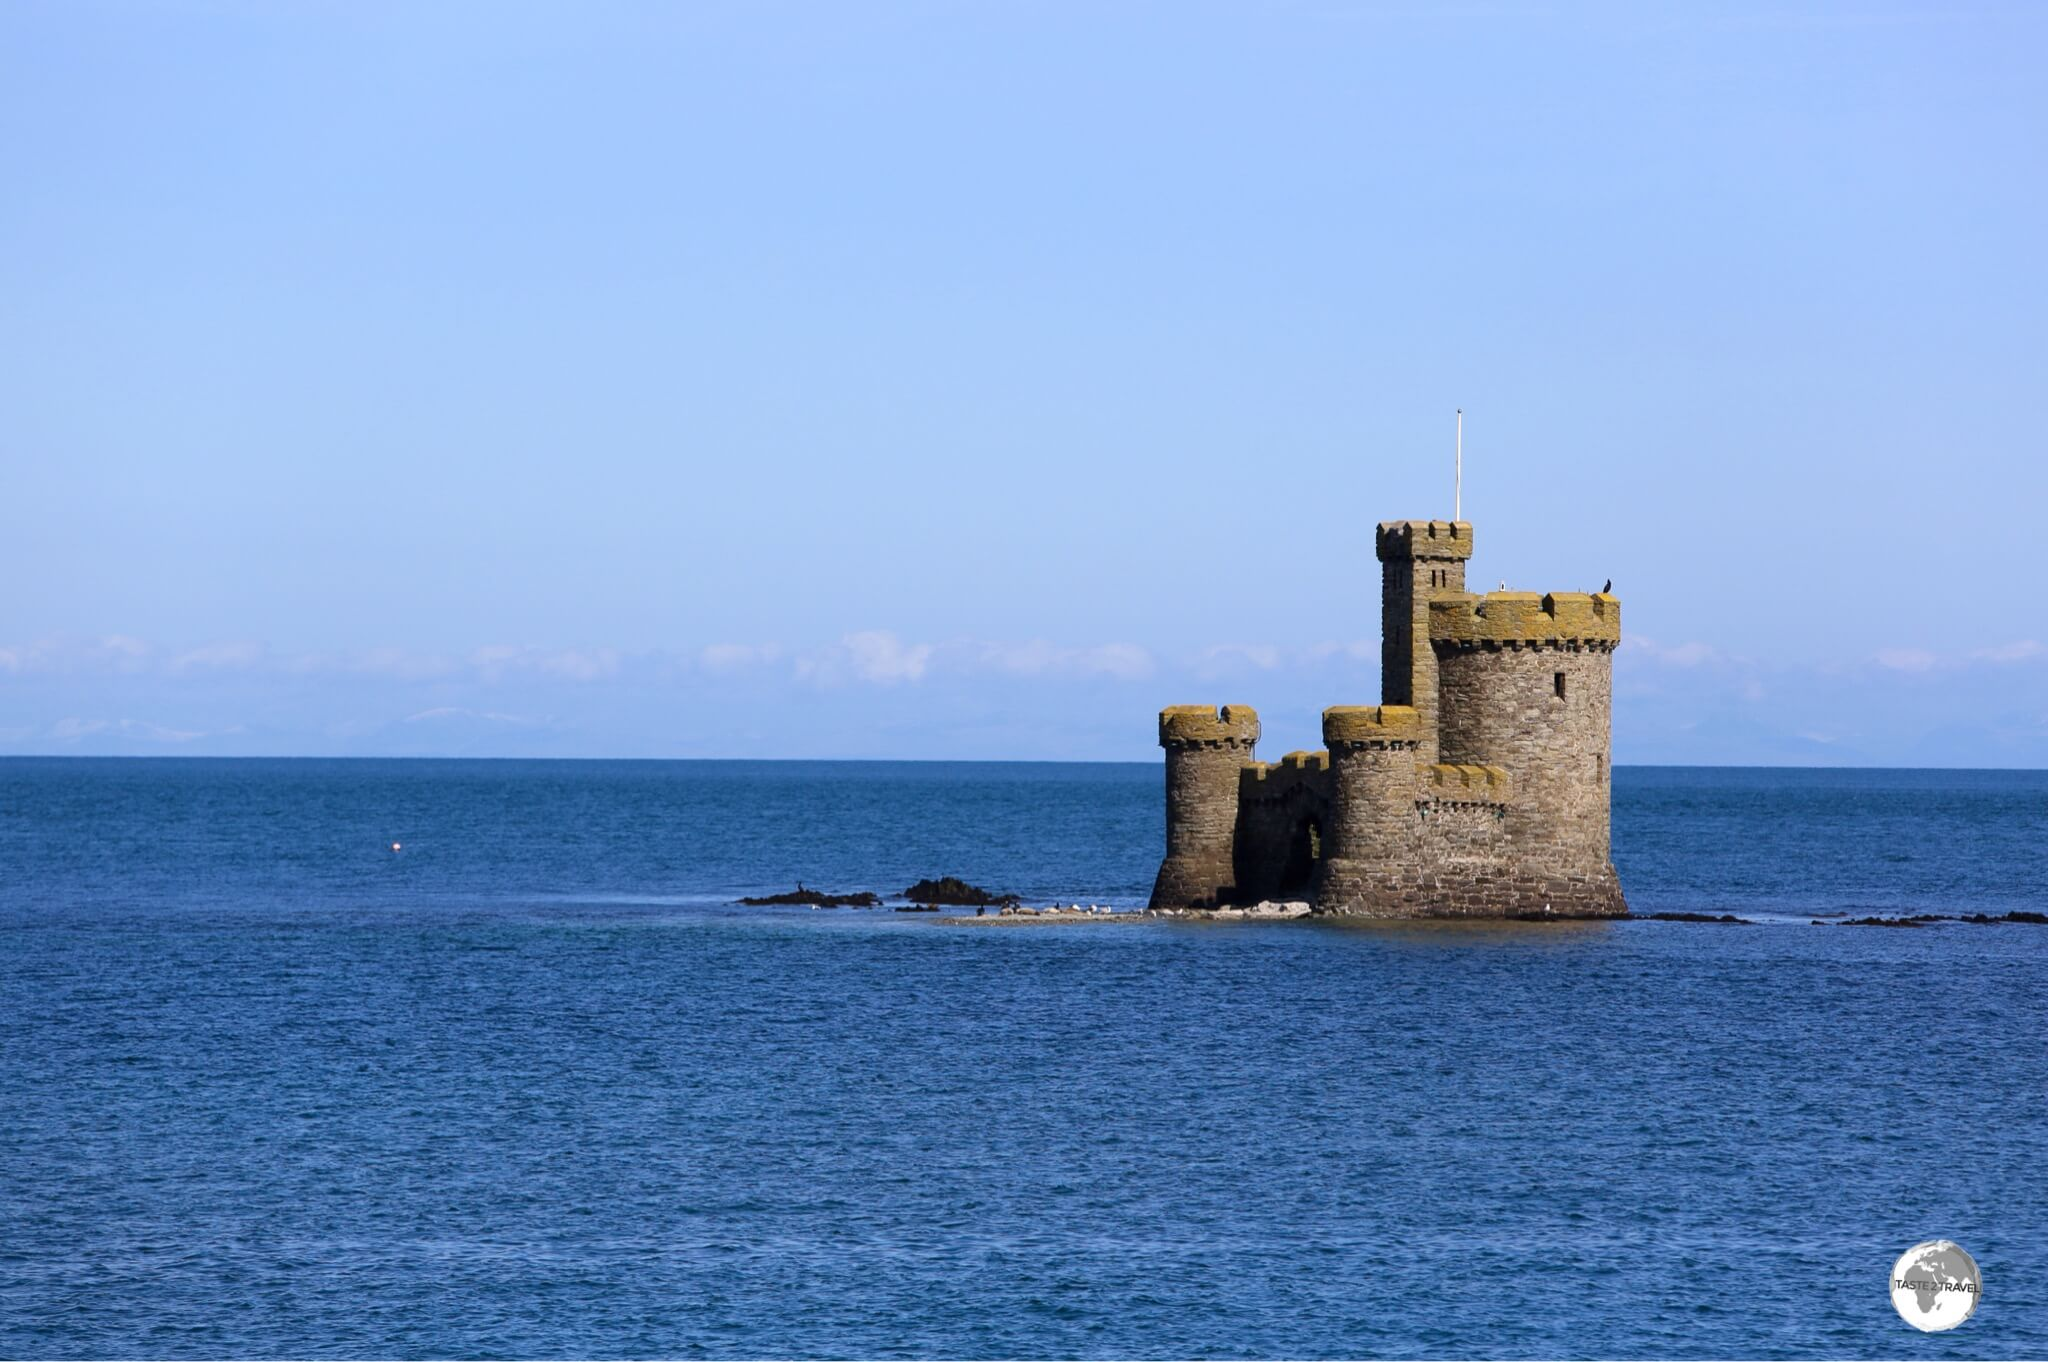 Built in 1832, the Tower of Refuge sits atop St. Mary's Isle, a partly submerged reef in Douglas harbour.